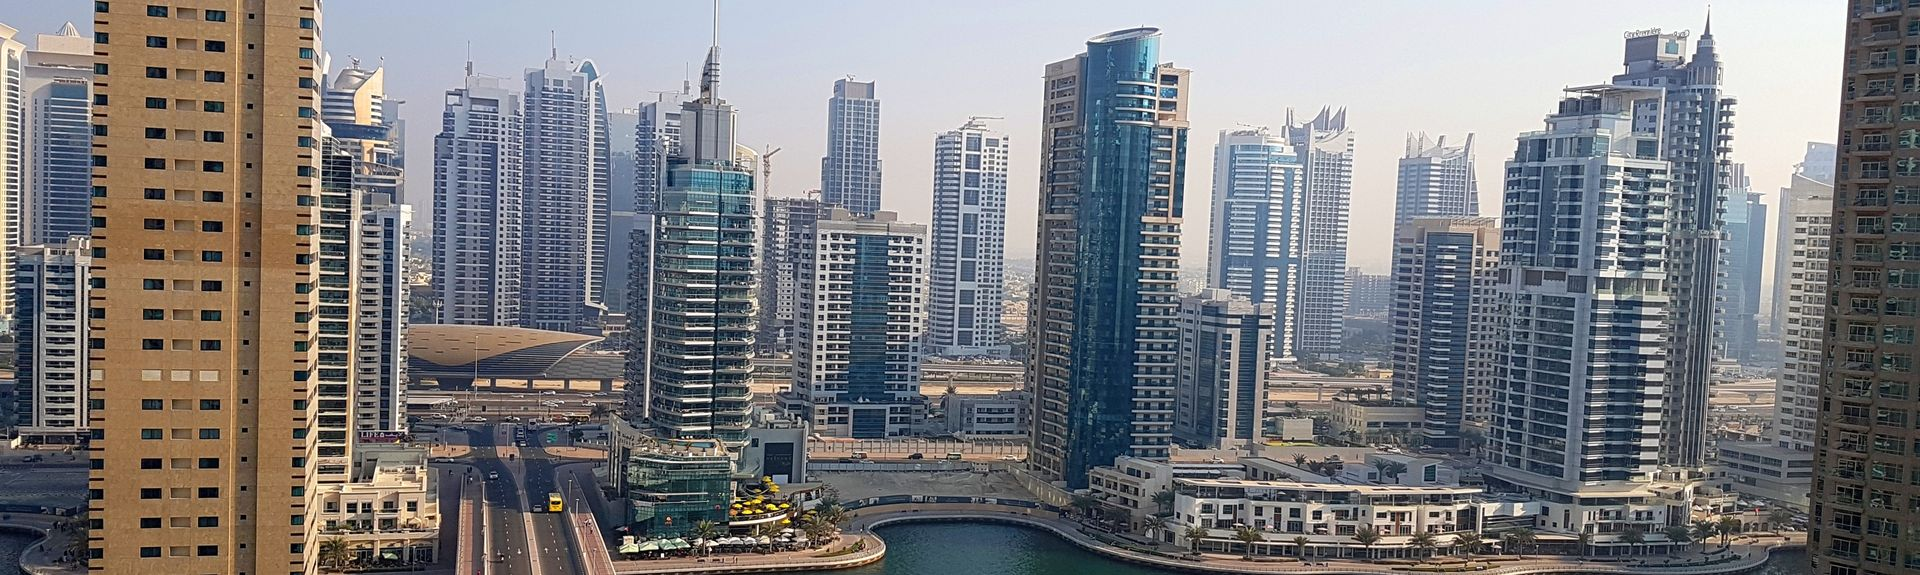 Jumeirah Lakes Towers - Dubai - United Arab Emirates